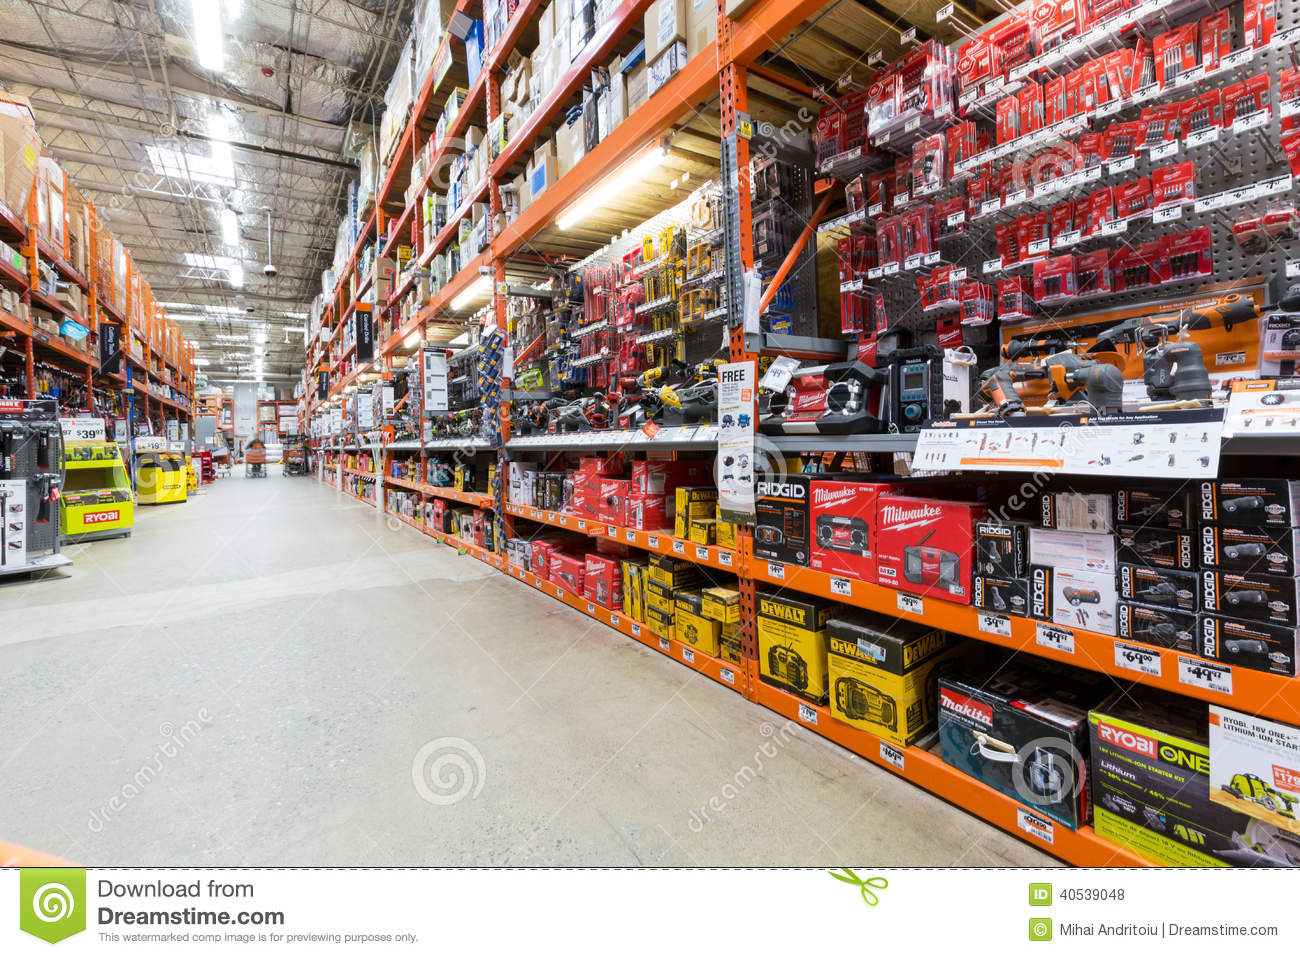 Power Tools Aisle In A Home Depot Hardware Store  The Home Depot Is